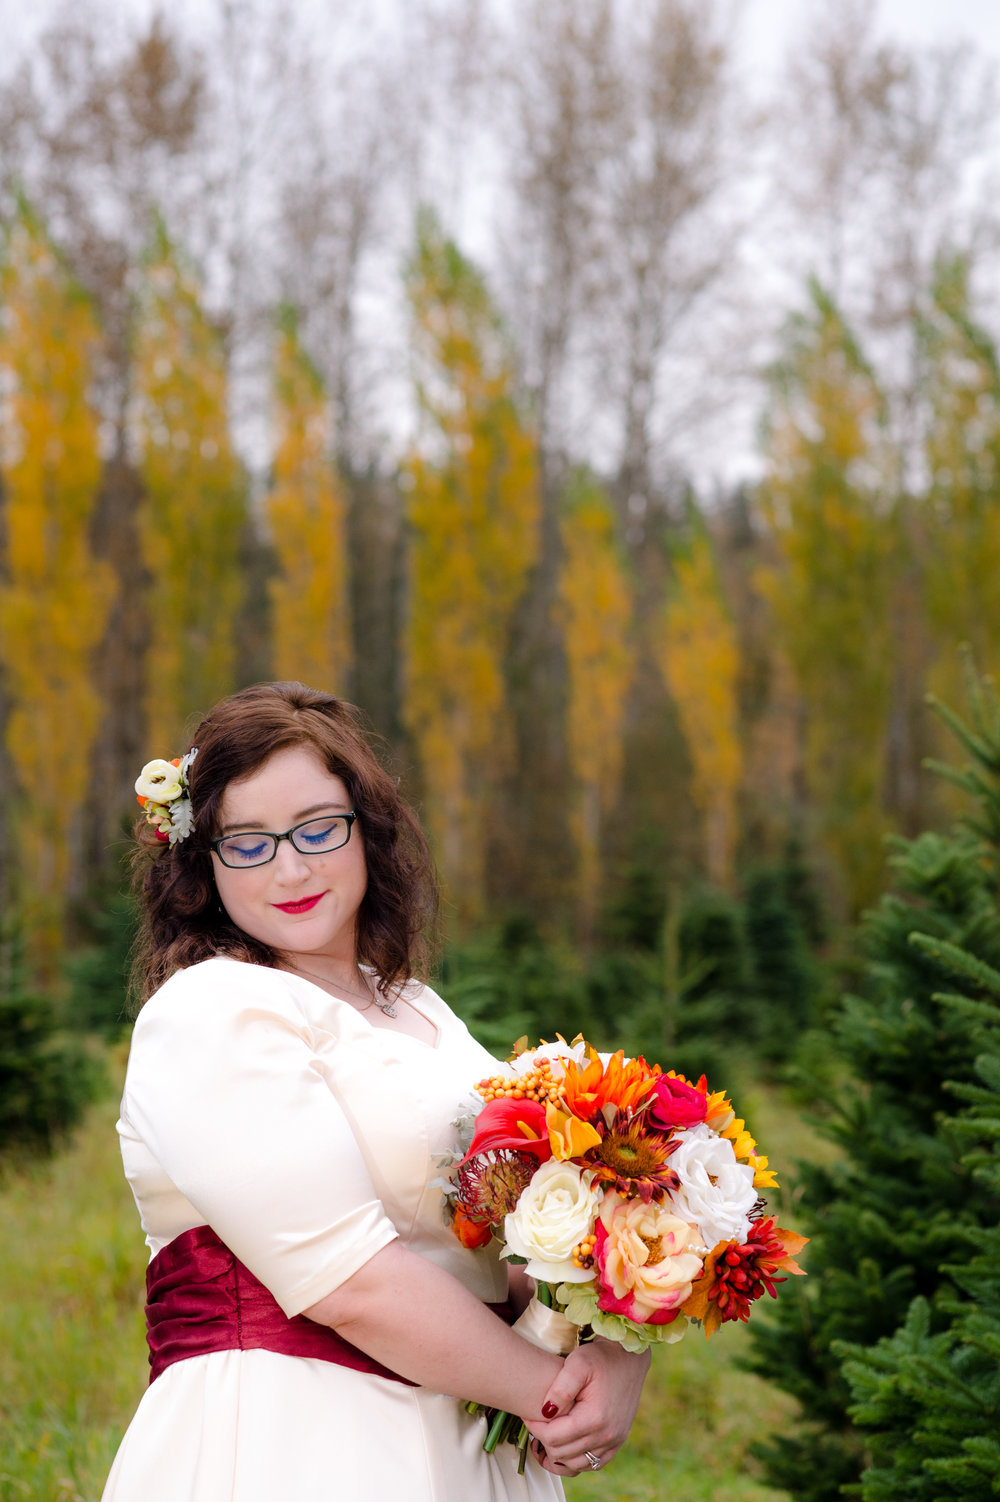 Rini + Matt Wedding_Tree Farm Wedding_Wedding at the Lodge_Kelsey Lane Photography_Winter Wedding_winter bride